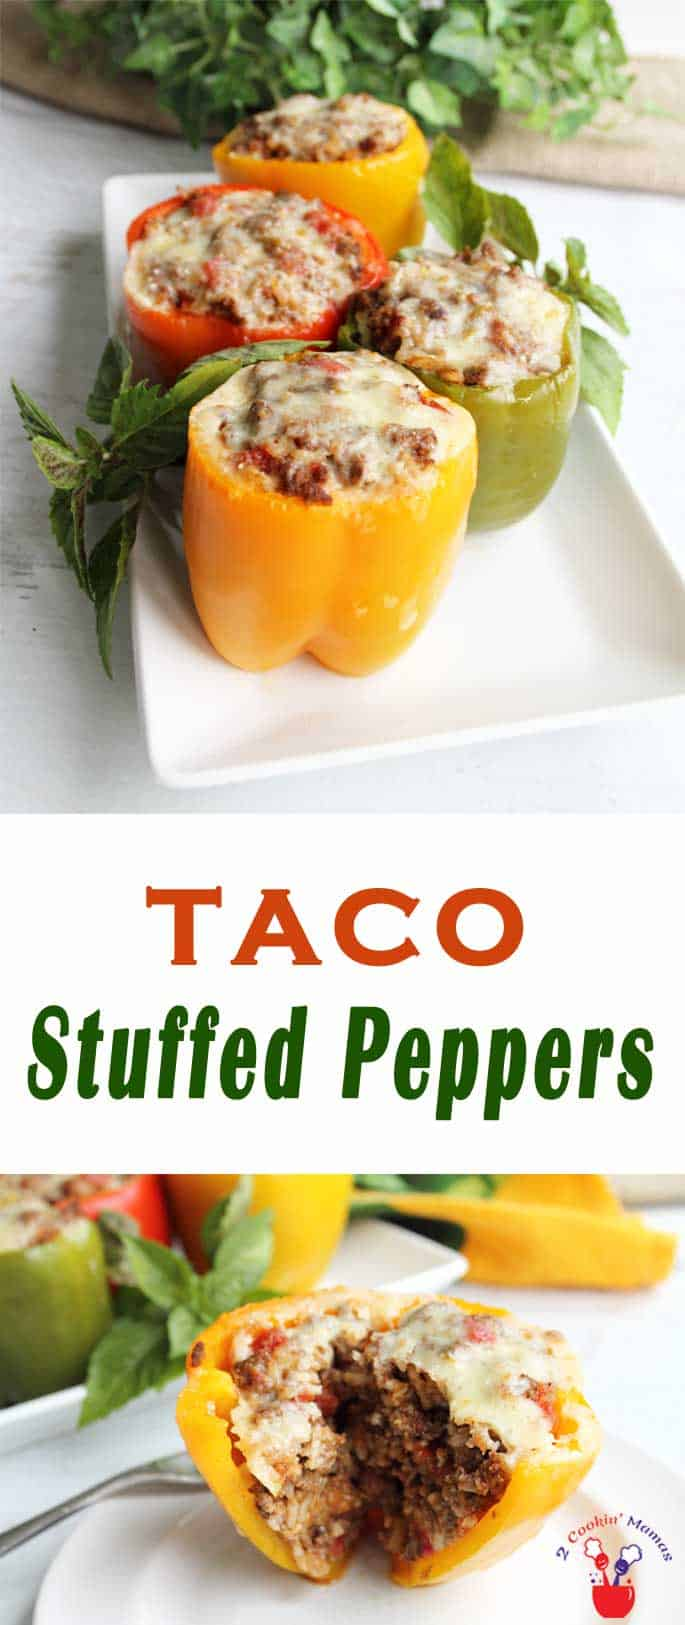 Taco Stuffed Peppers | 2 Cookin Mamas Taco Stuffed peppers are a healthy and low carb way to get your taco fix. All your favorite taco fixins stuffed into colorful sweet peppers. #tacos #recipe #lowcarb #dinner